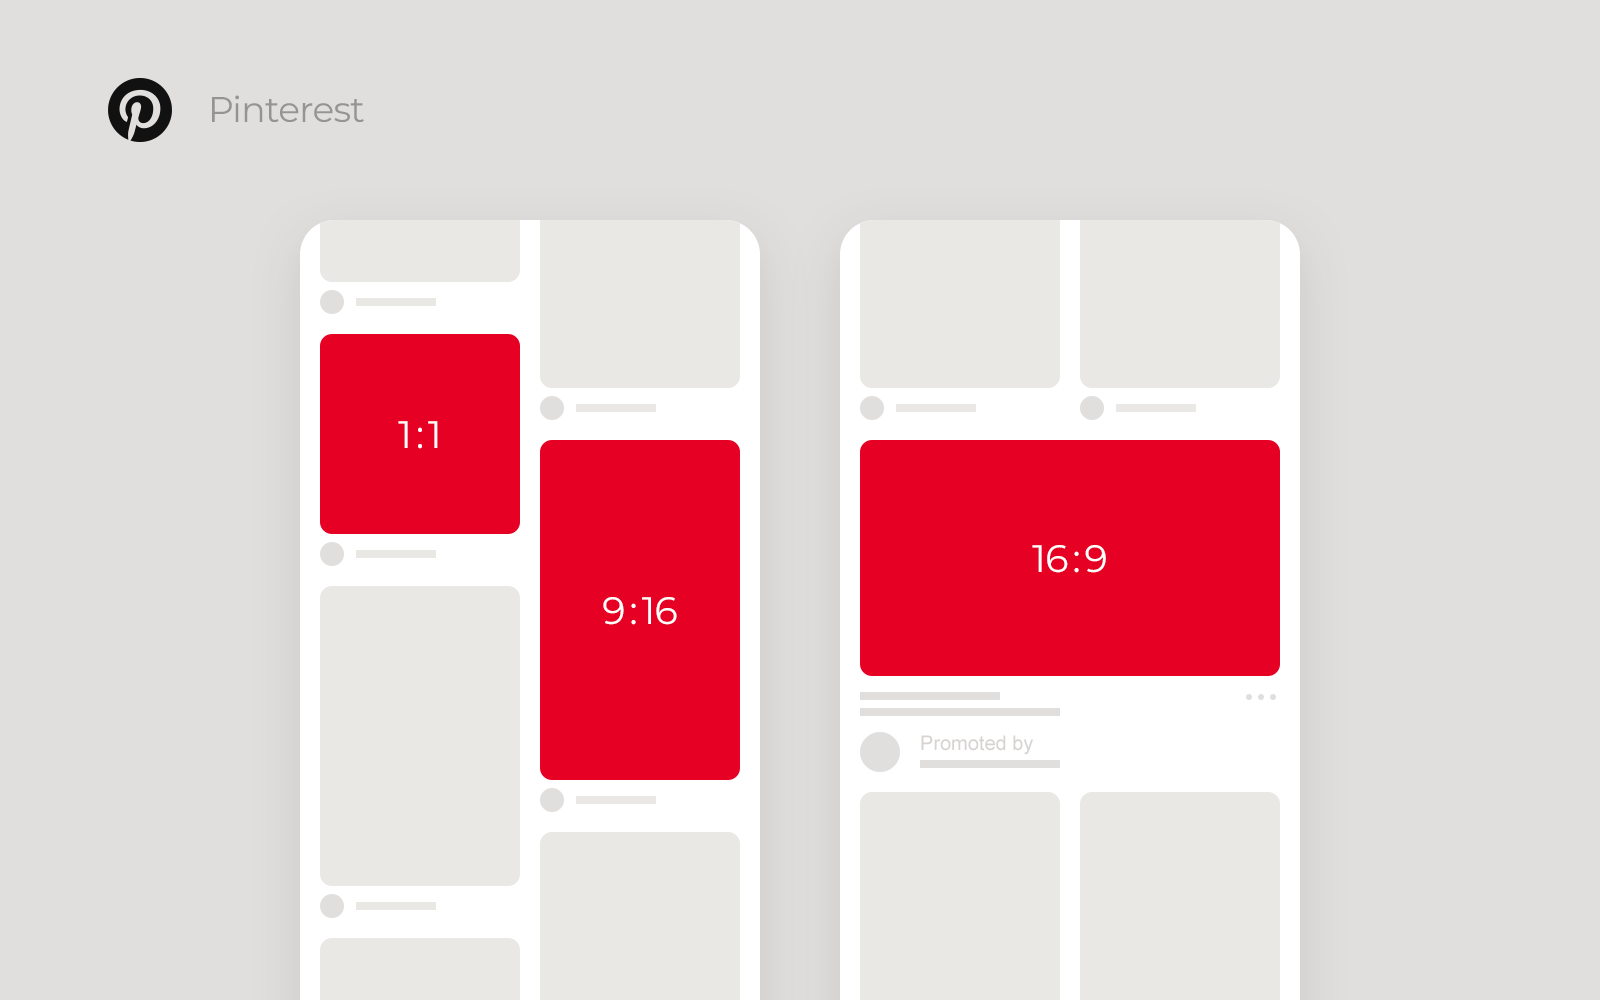 Pinterest Square and Vertical video, their aspect ratio